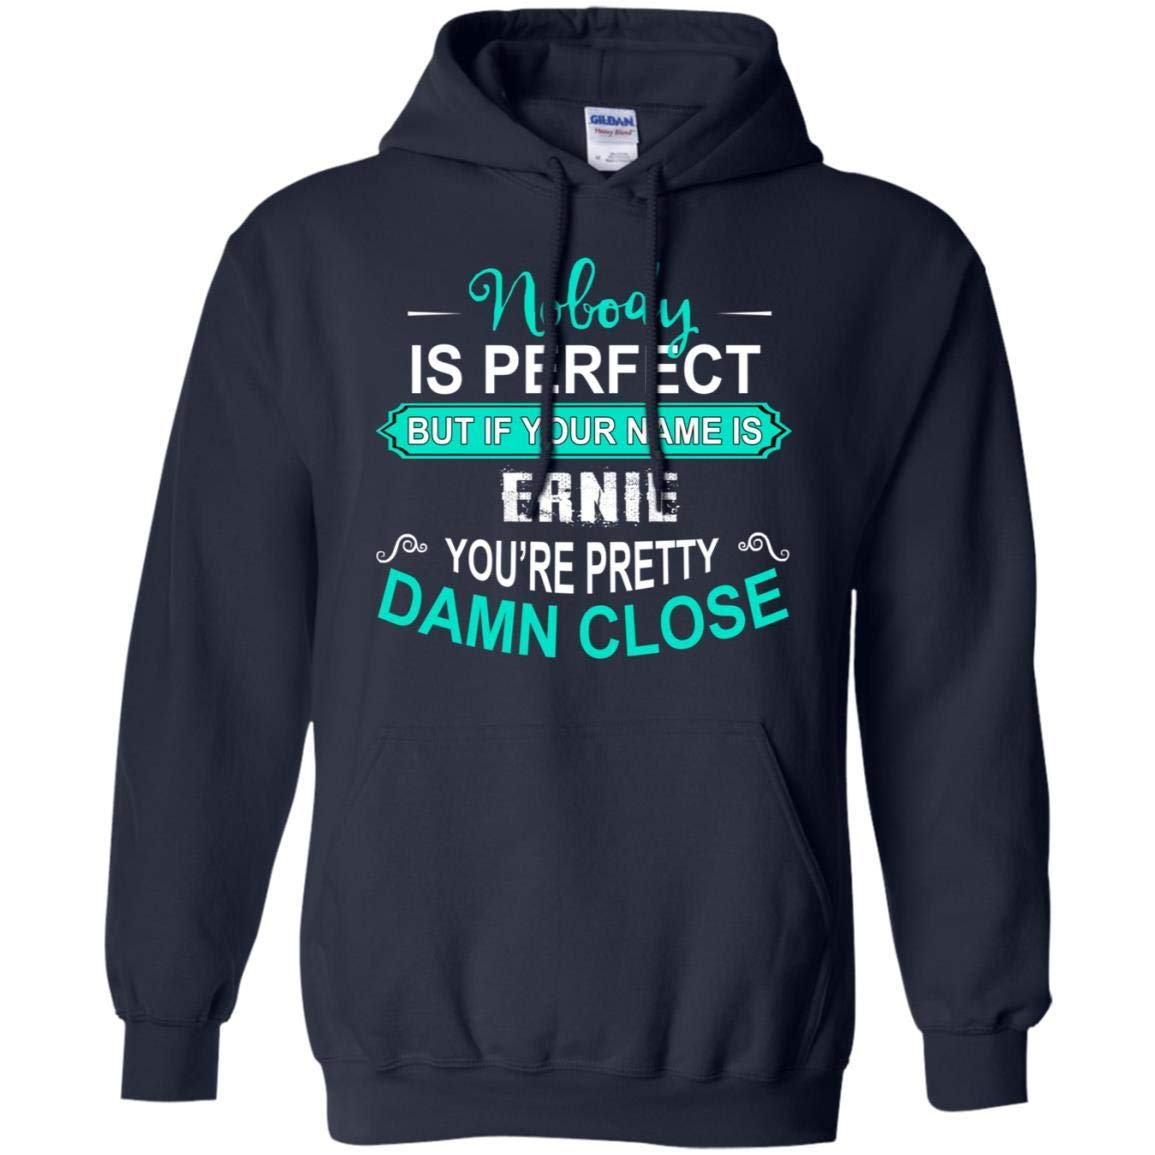 Navy Tee Shine Nobody is Perfect But If Your Name is Ernie You're Pretty Damn Close Funny Hoodie Sweatshirt for Men Xmas Present